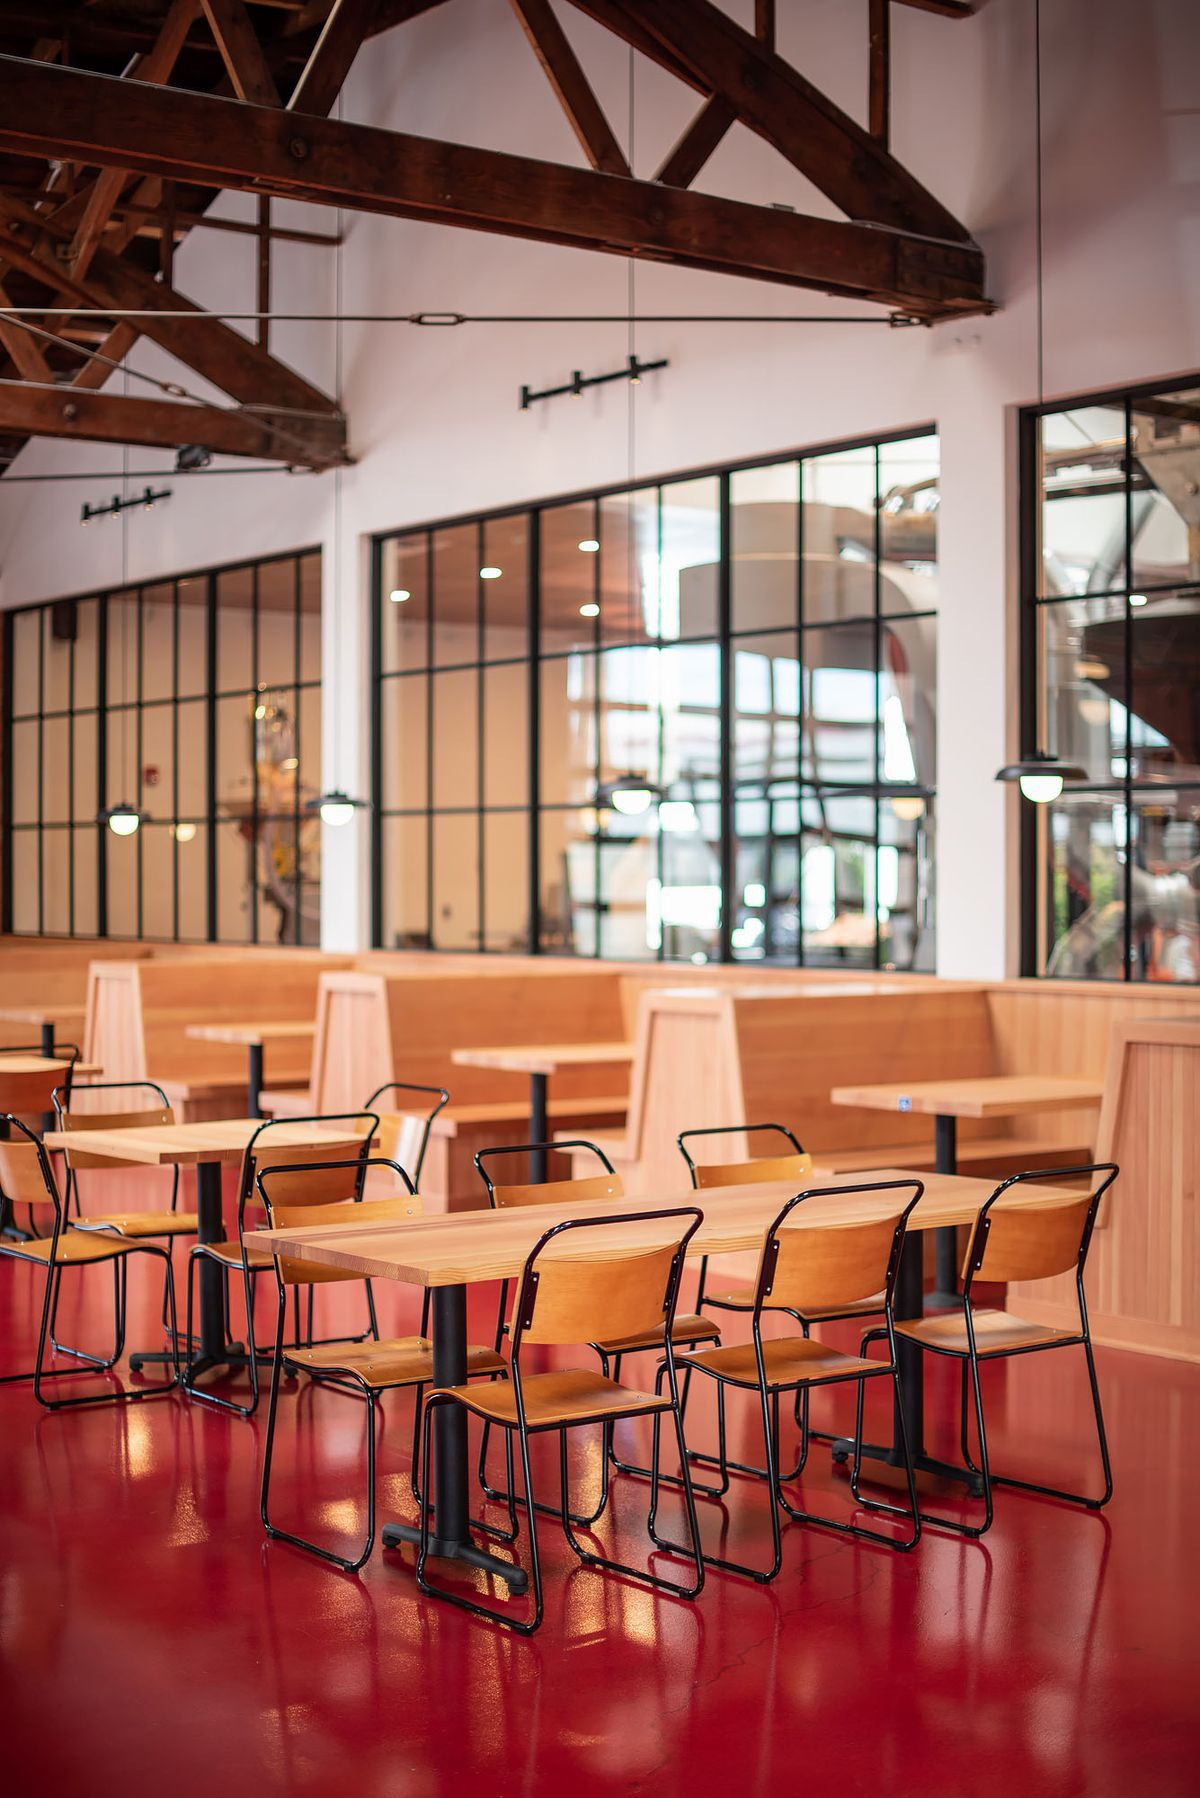 Wooden booths and tables inside a new cafe with red floors.